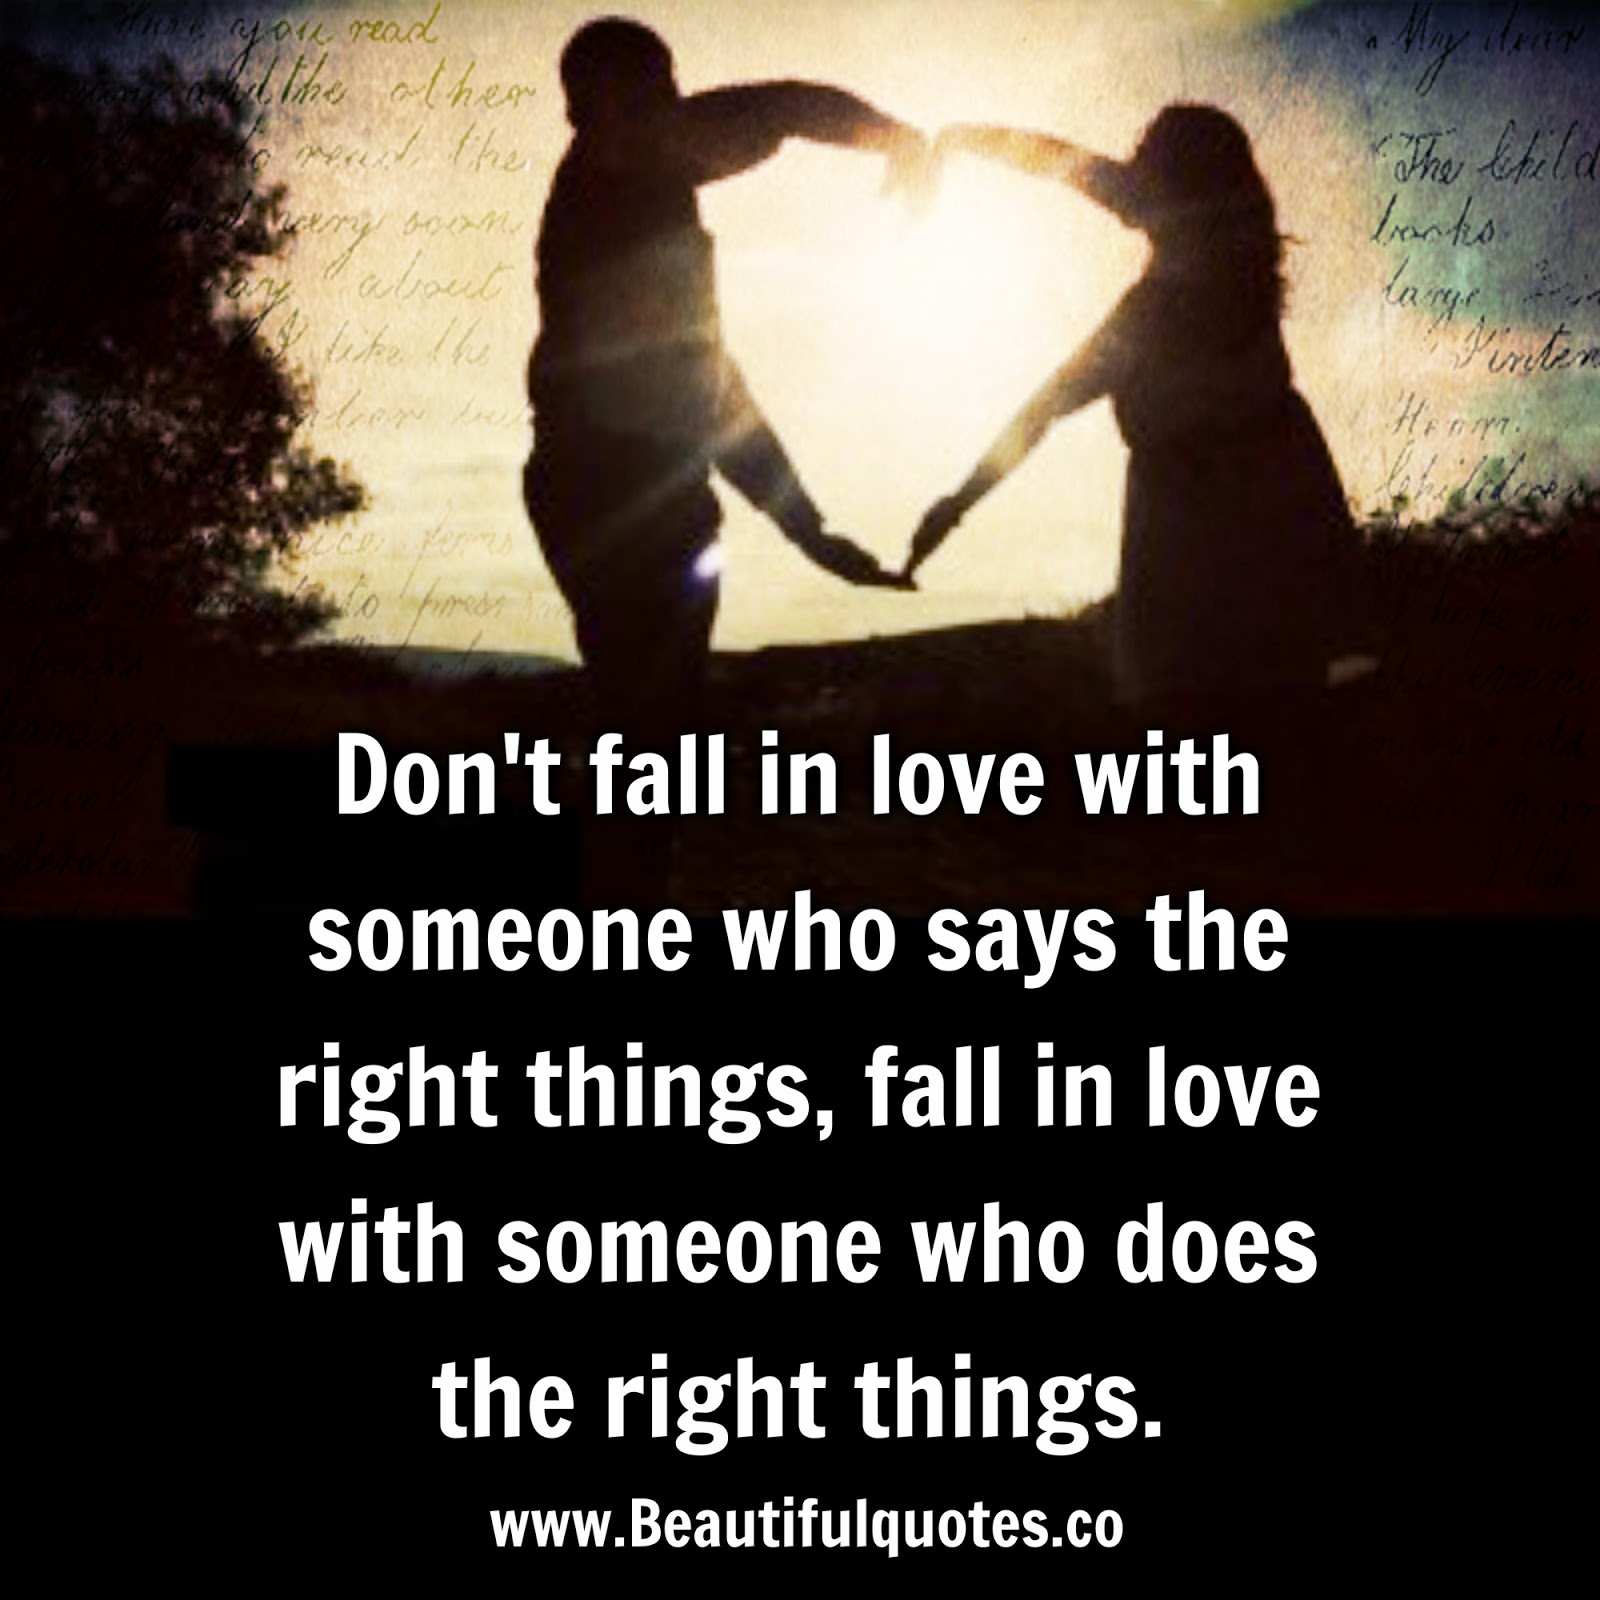 Don t fall in love with someone who says the right things